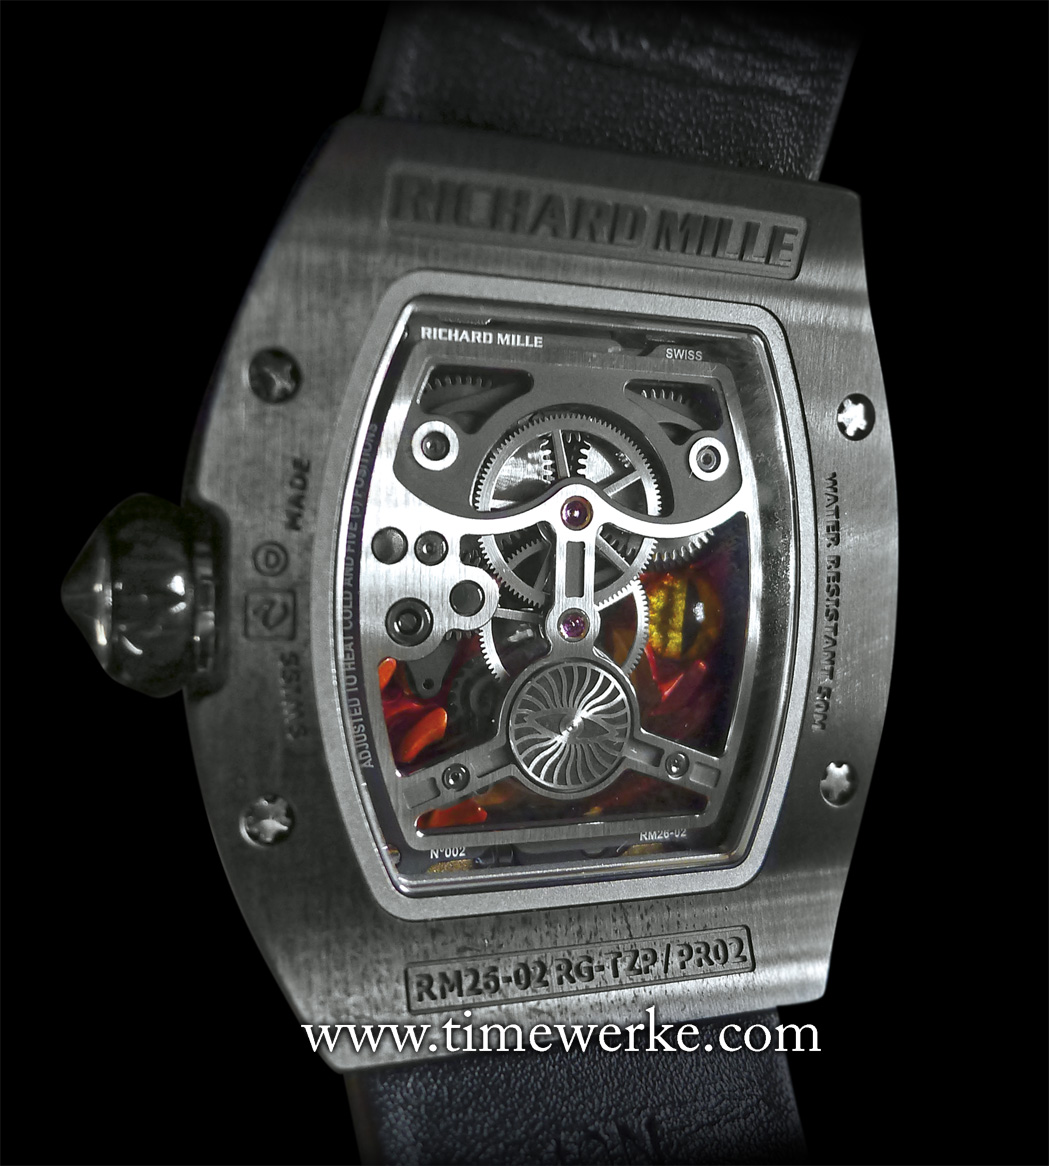 Case back of Richard Mille's Tourbillon RM 26-02 Evil Eye. The burning flames and evil eyes (one on the front, the other at the back) are Grand feu enamel and micro-lacquer artwork made by Olivier Vaucher. Photo: © TANG Portfolio.